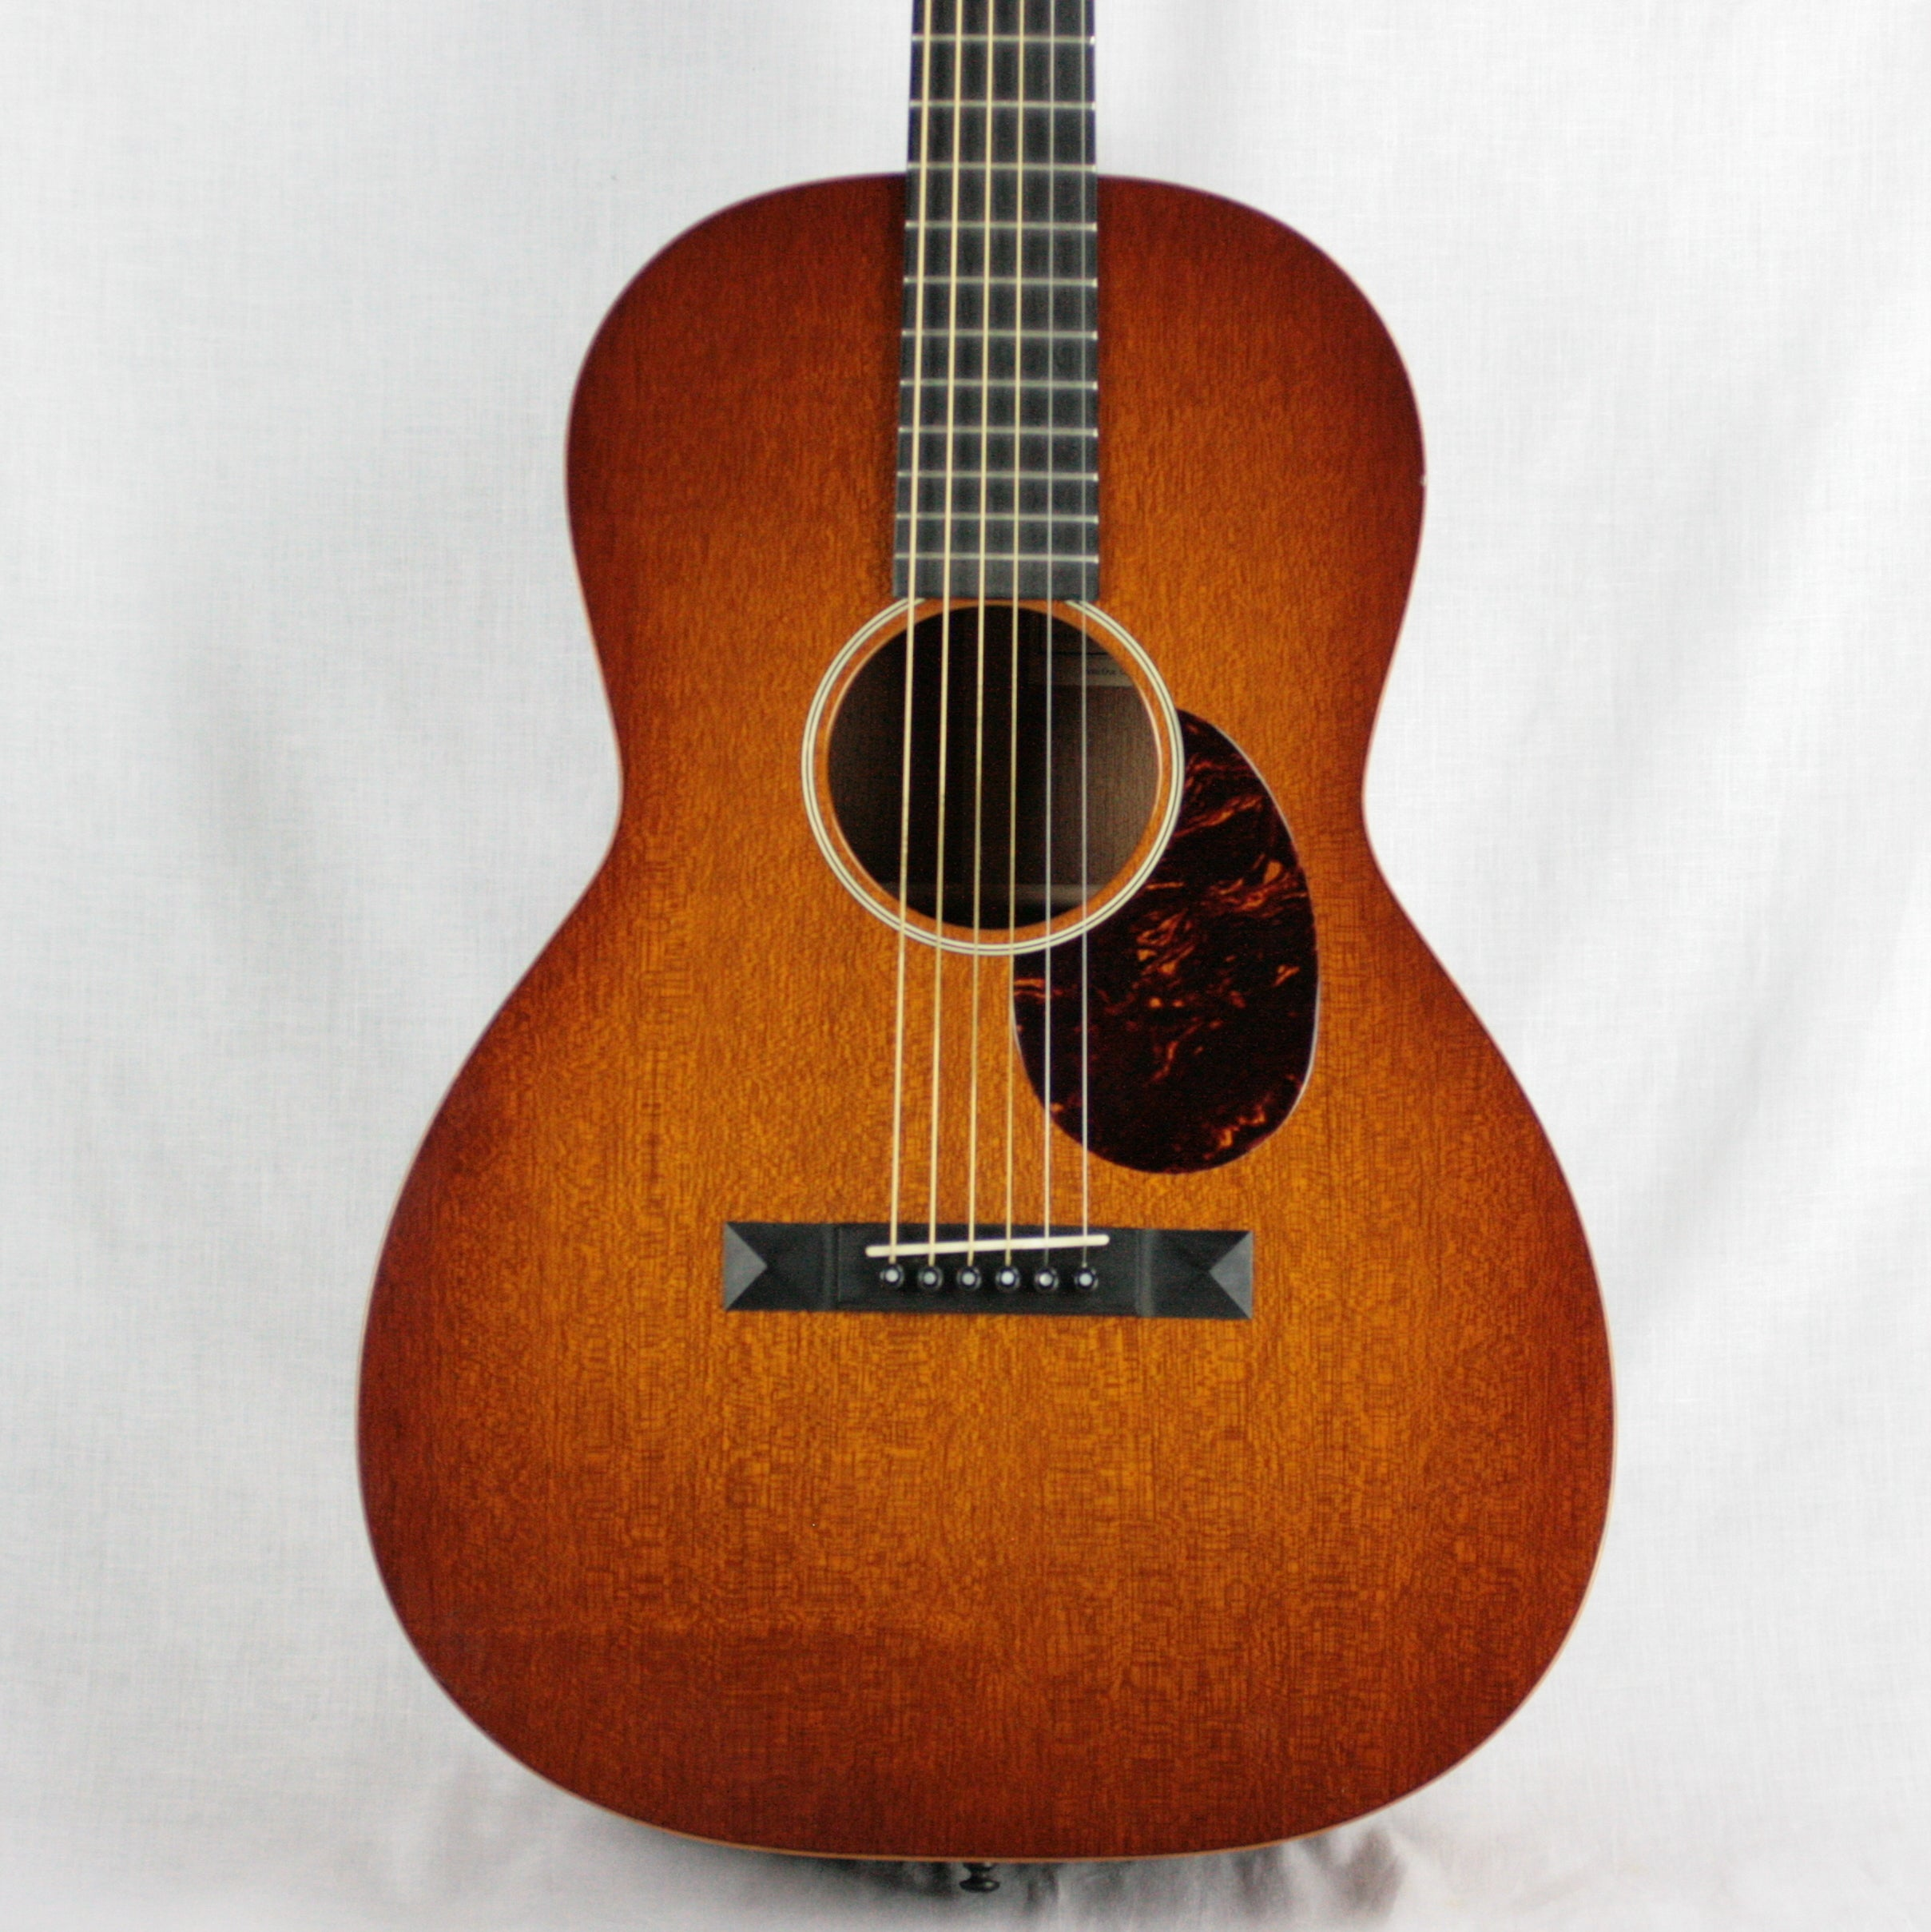 2011 Santa Cruz Custom 1929 00 GEORGIA PEACH SUNBURST Mahogany Acoustic Guitar! oo om 000